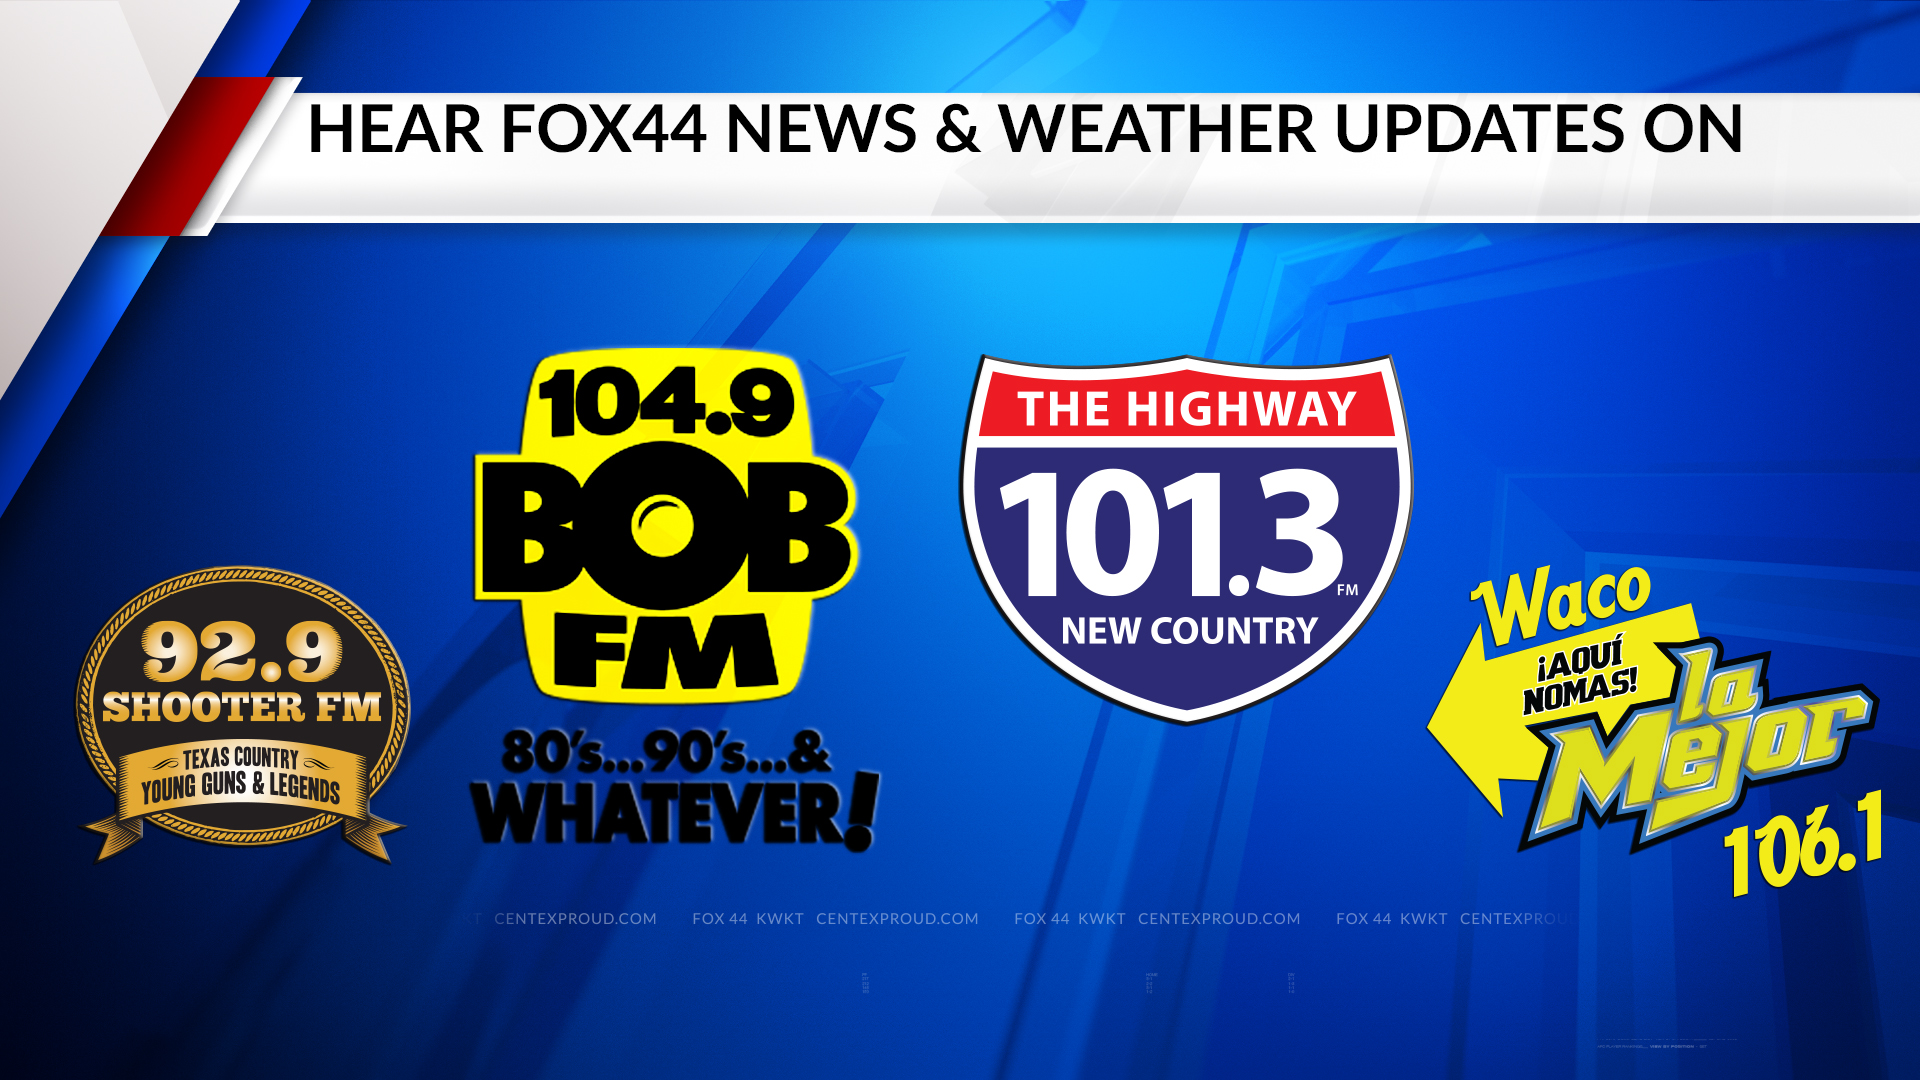 Find FOX 44 on the radio!